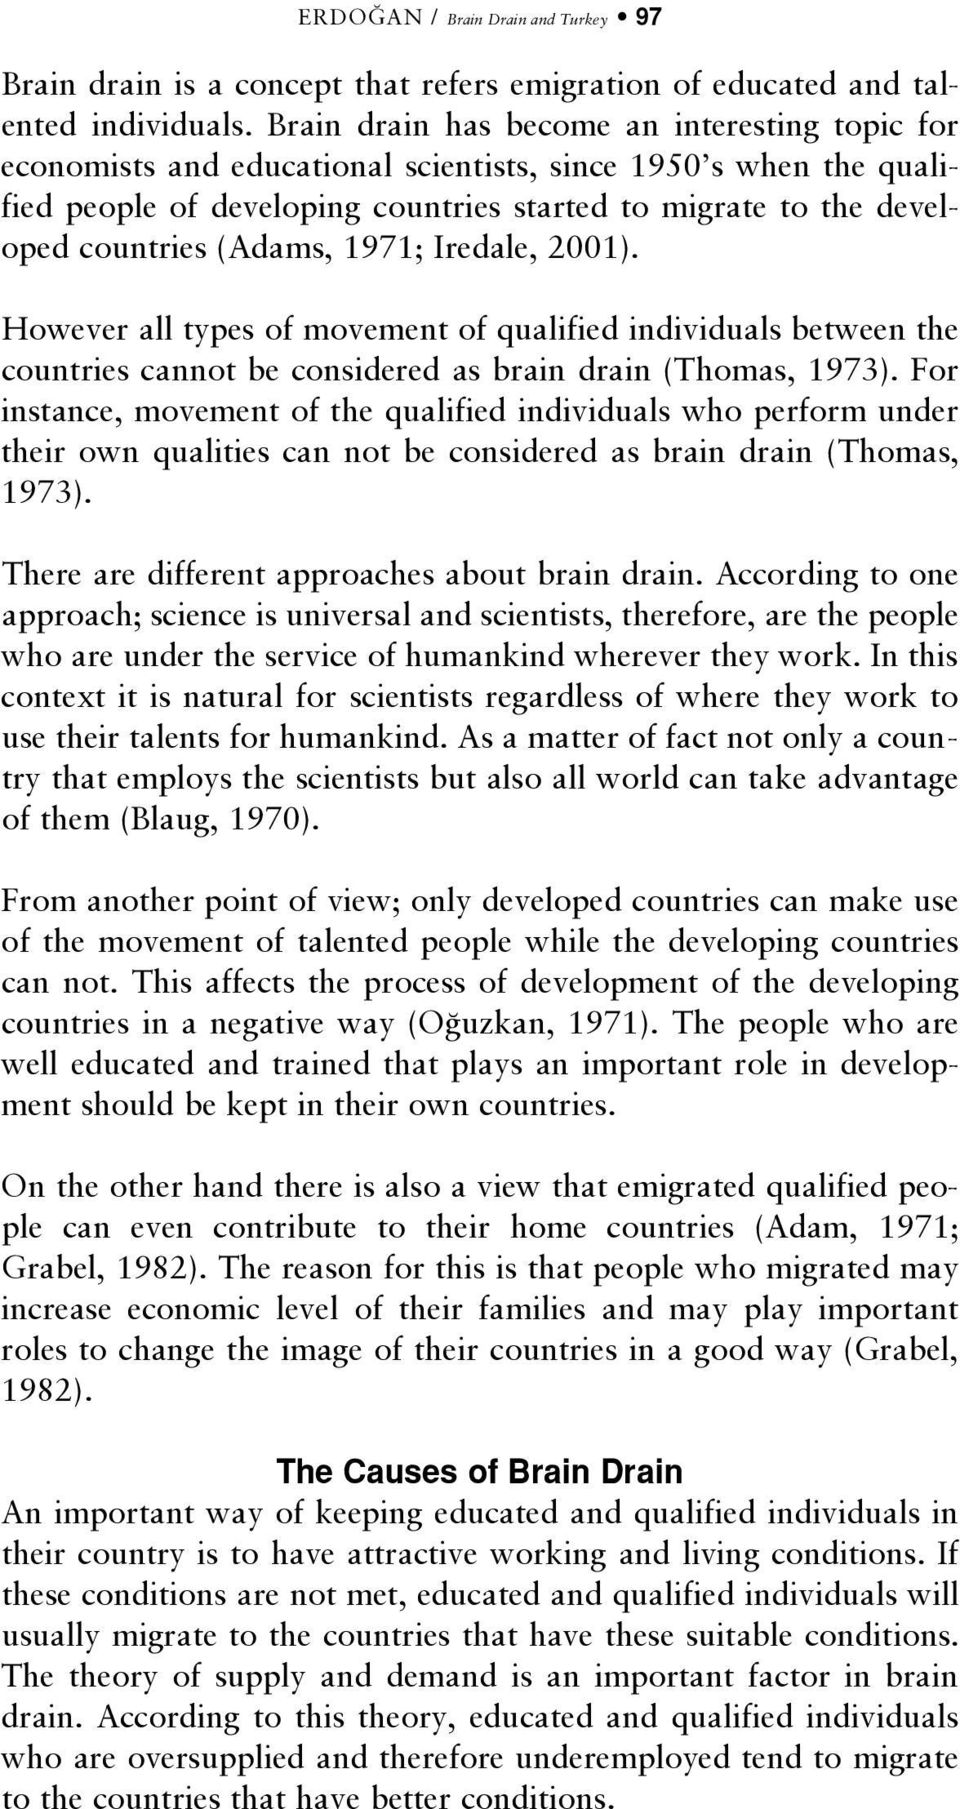 (Adams, 1971; Iredale, 2001). However all types of movement of qualified individuals between the countries cannot be considered as brain drain (Thomas, 1973).